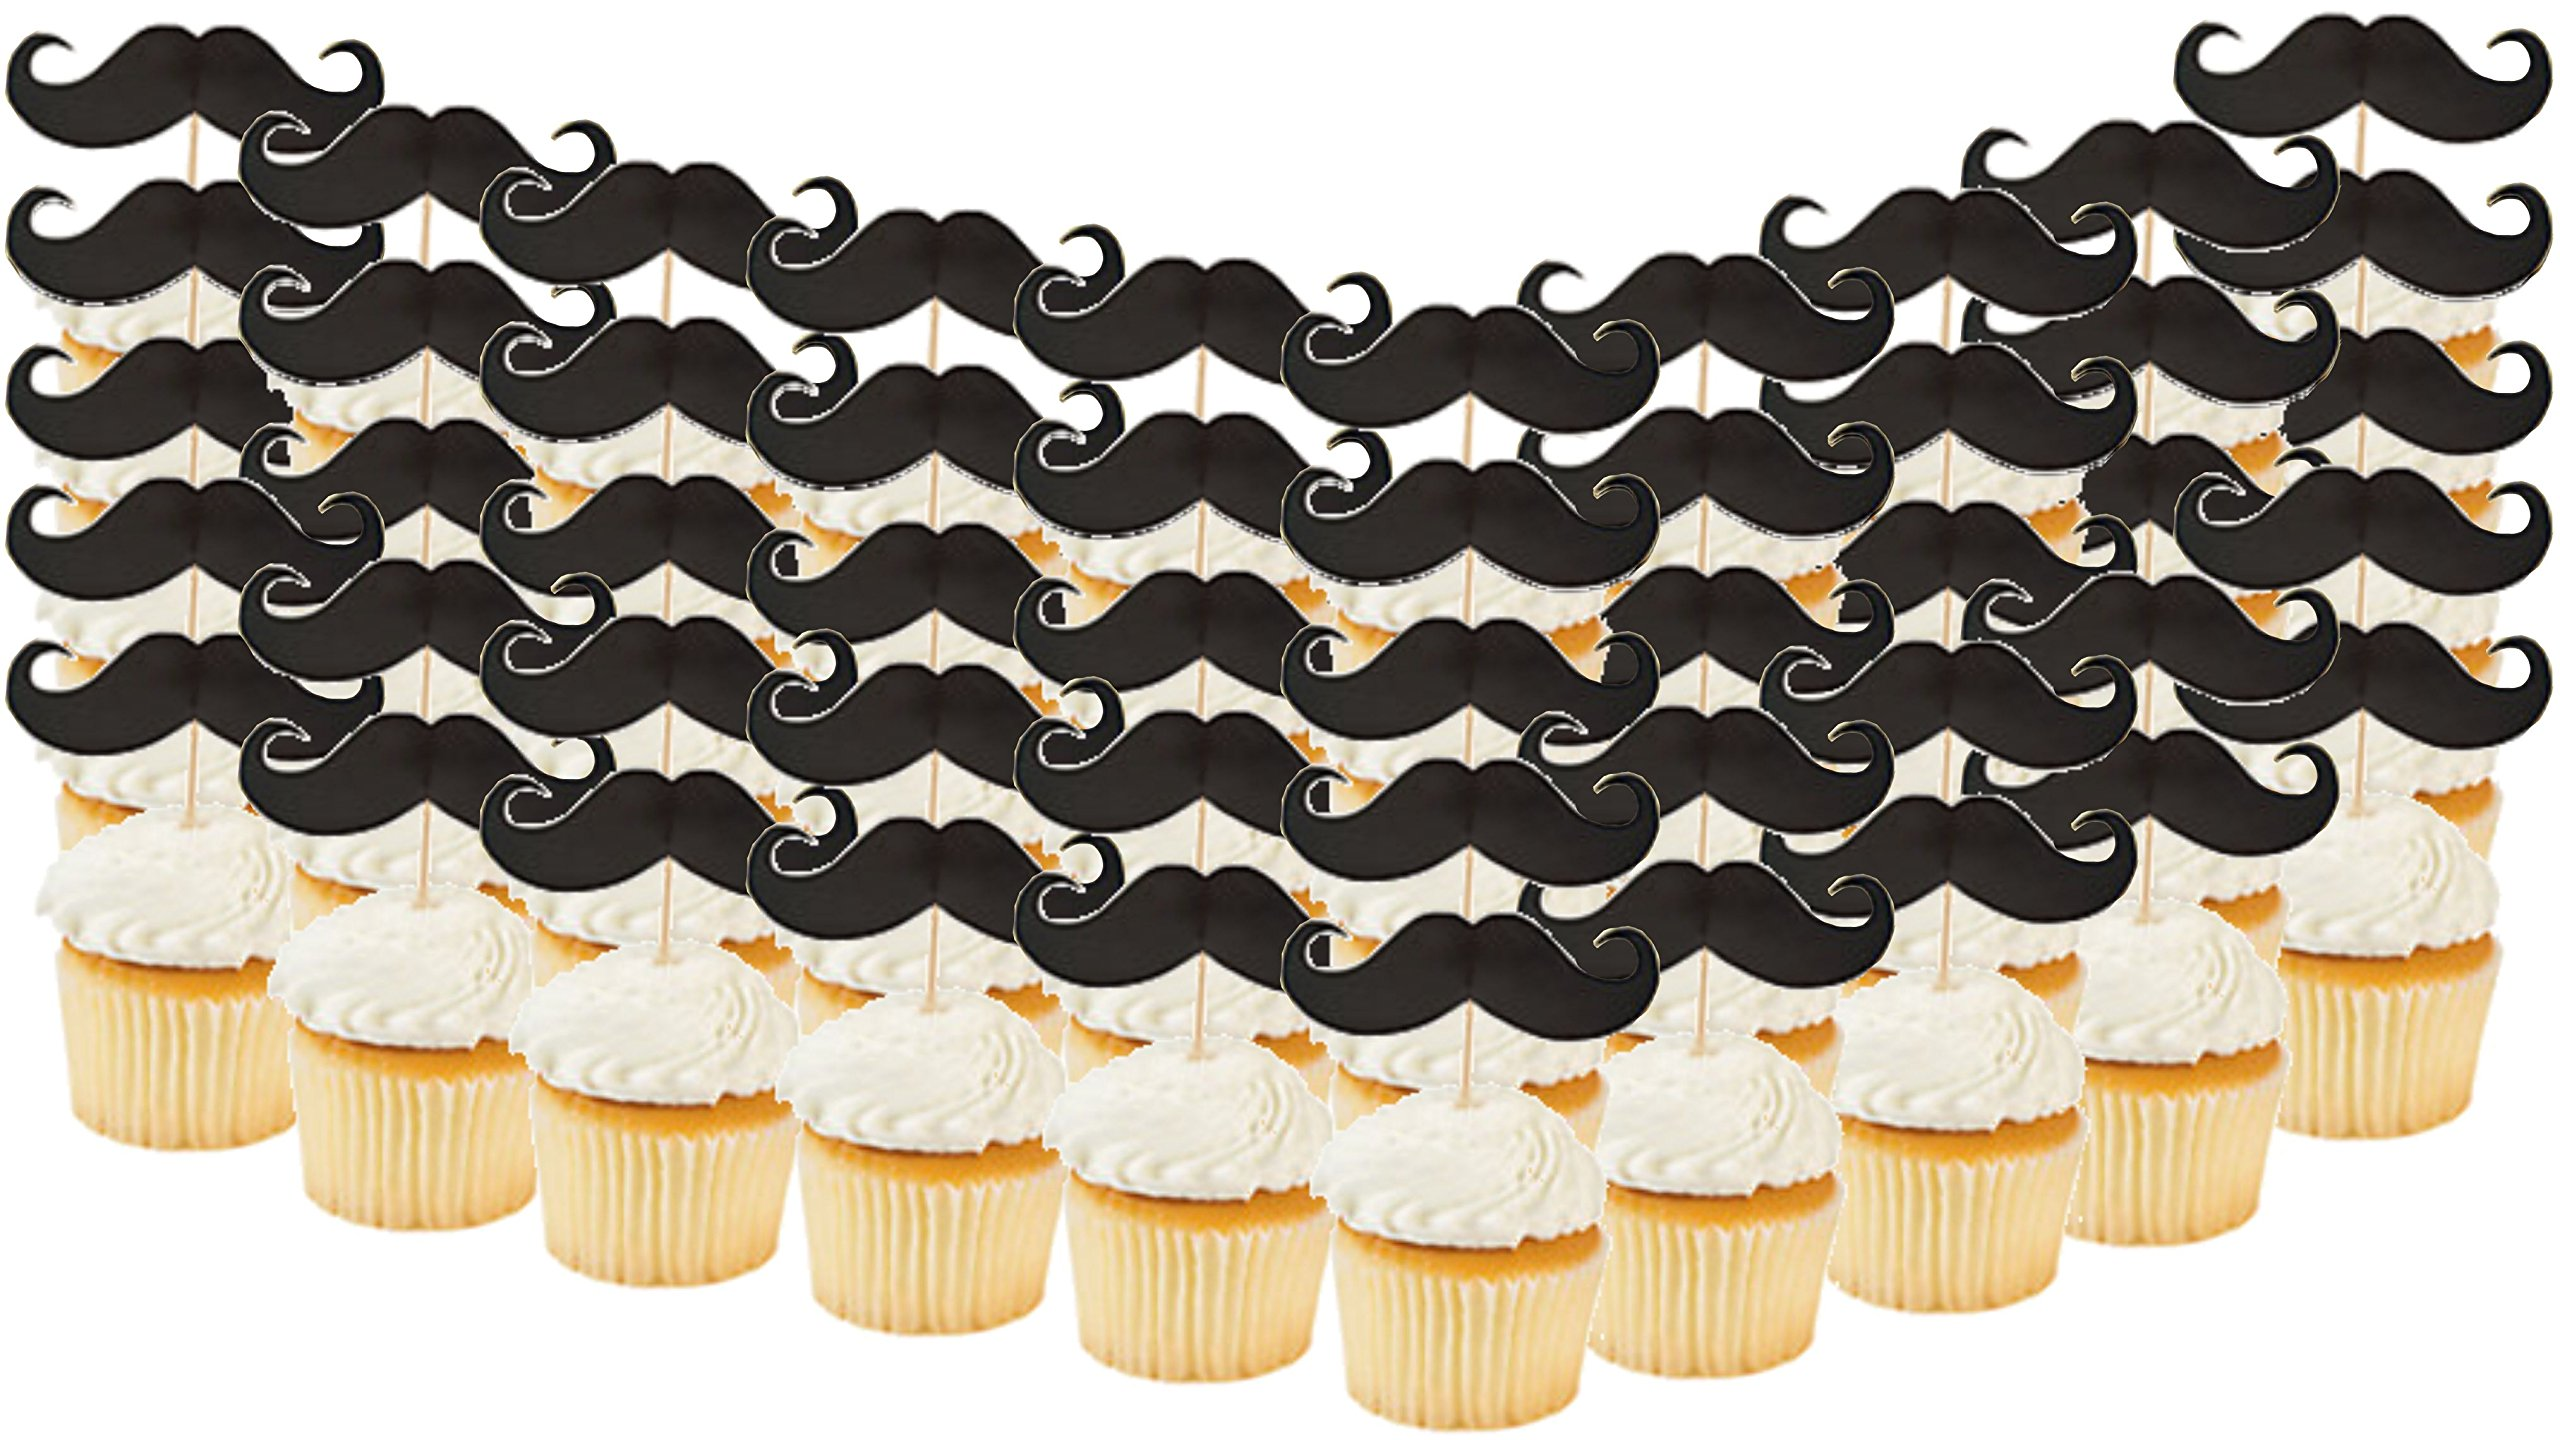 Mustache Baby Shower Birthday Party Supply Bundle Bulk Pack Includes 12 Swirl Decorations, 50 Mustache Food Picks, 12 Latex Balloons, and 1 Mustache Table Cover (BONUS! Matching Party Straw Pack) by Everyday Party Bundles (Image #3)